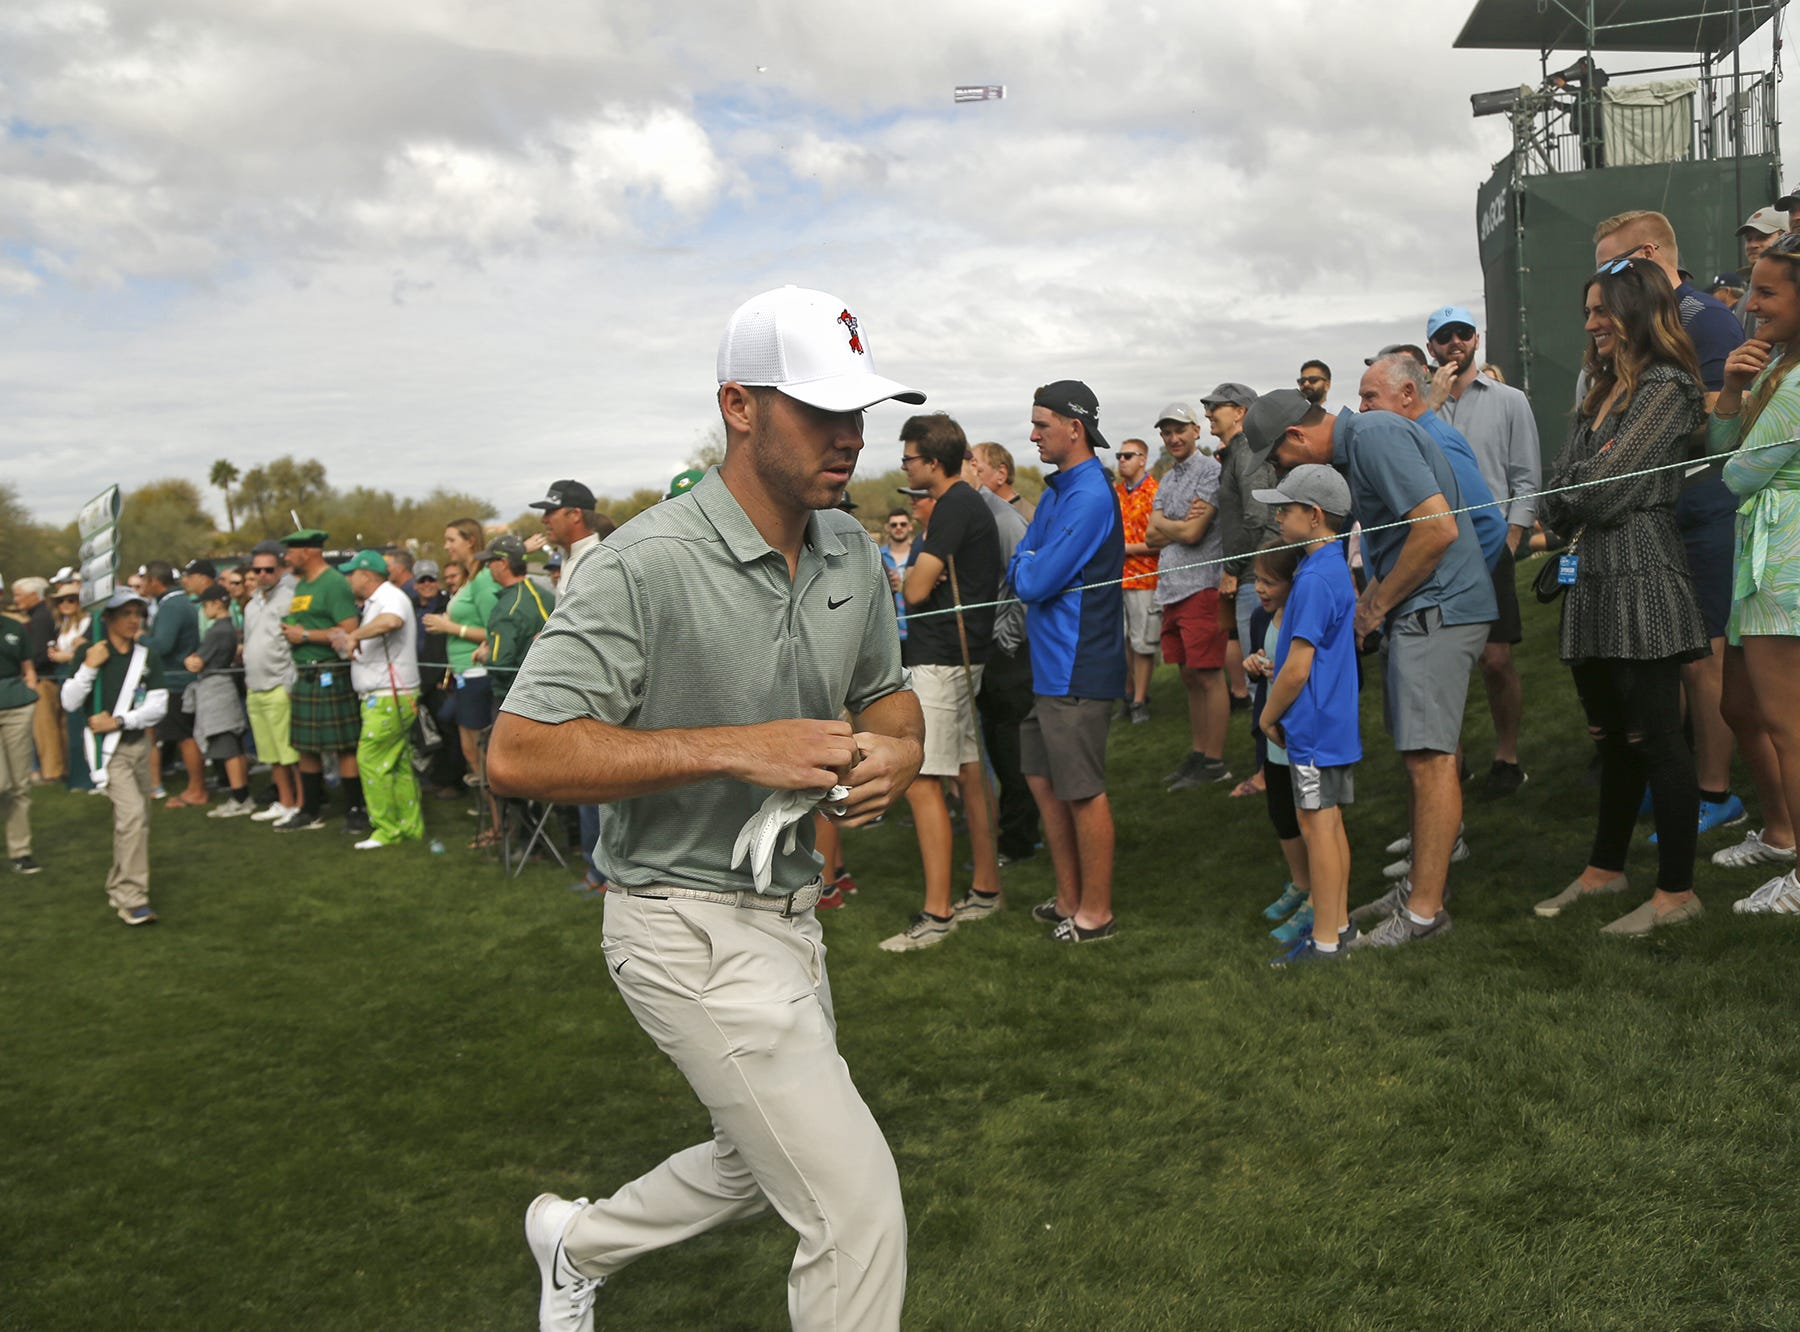 Matthew Wolff comes off the 9th green during the third round of the Waste Management Phoenix Open at TPC Scottsdale in Scottsdale, Ariz. on February 2, 2019.